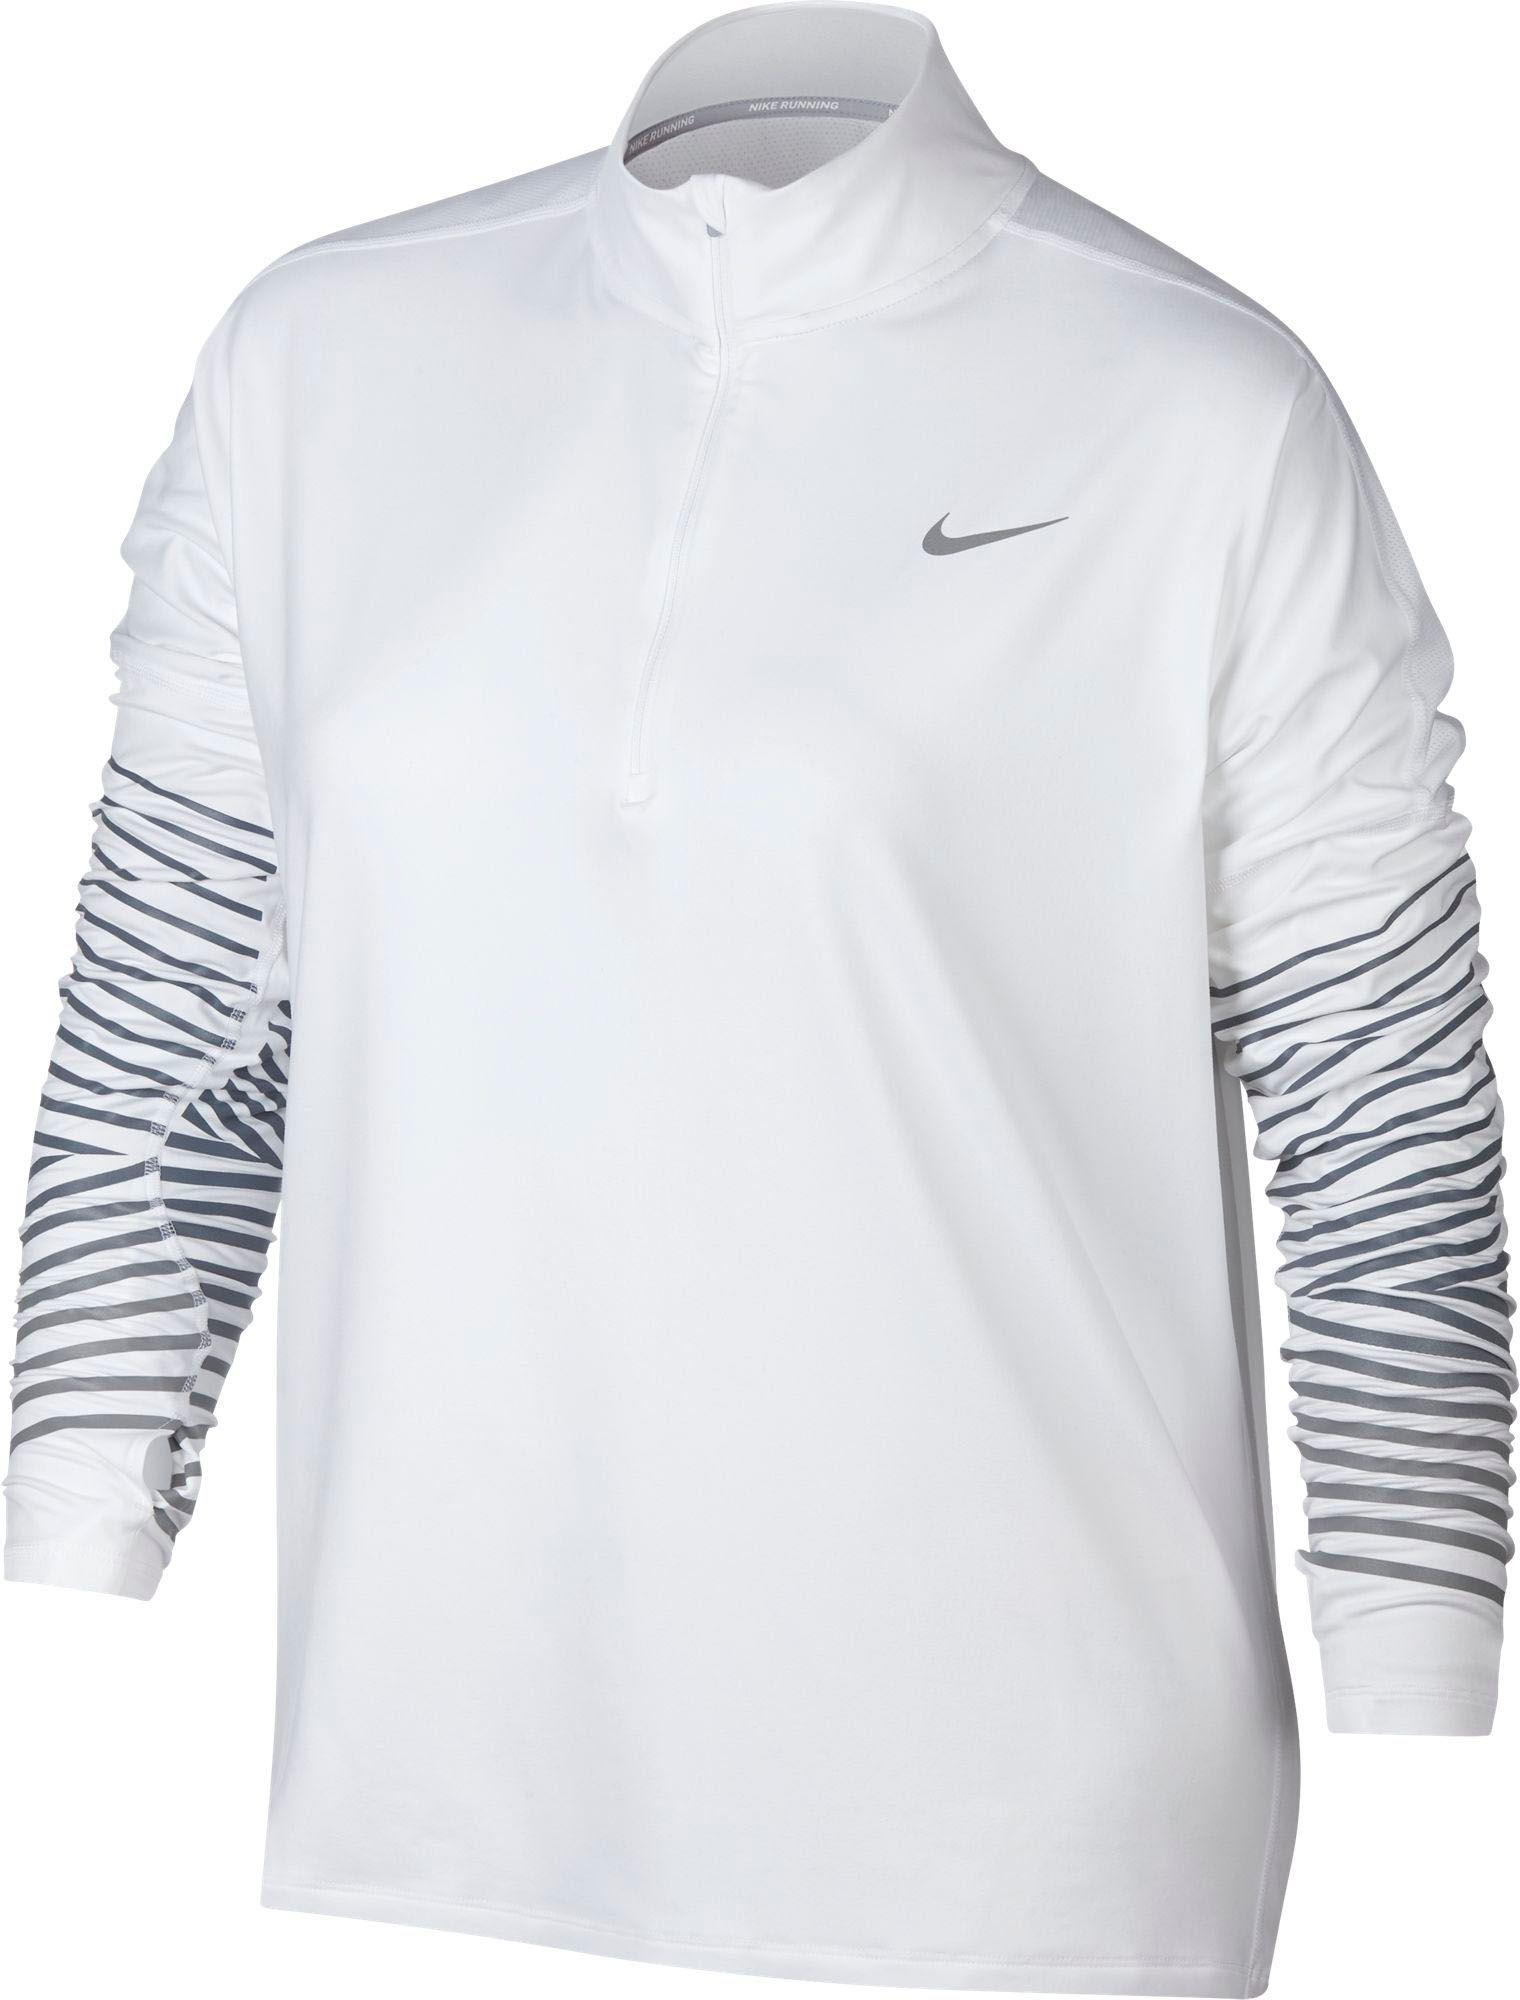 1898288798f Lyst - Nike Plus Size Dry Element Flash Running Shirt in White